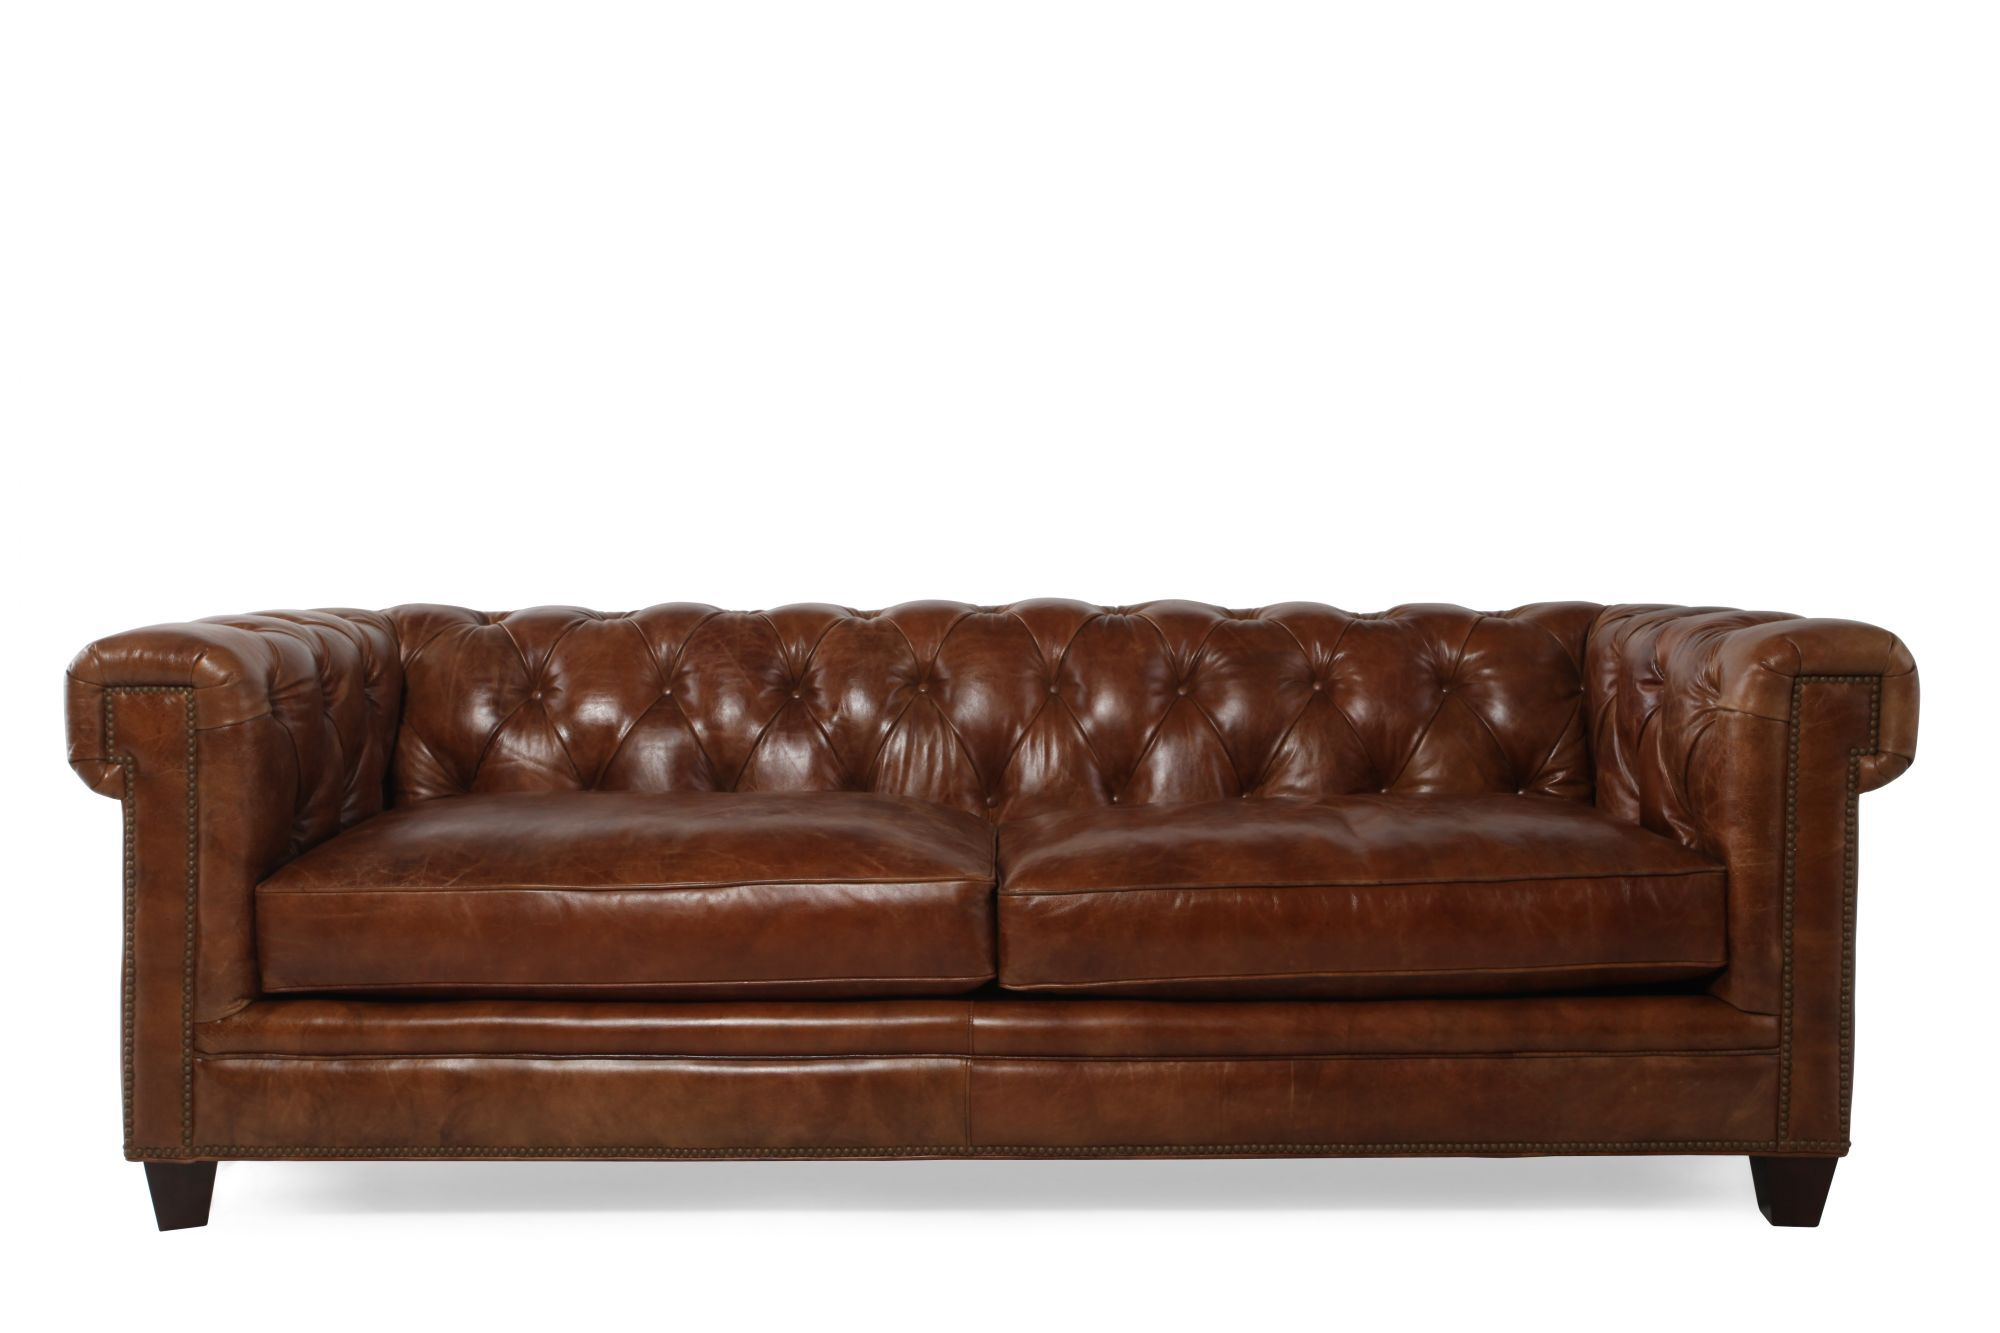 On Tufted Leather 90 Sofa In Saddle